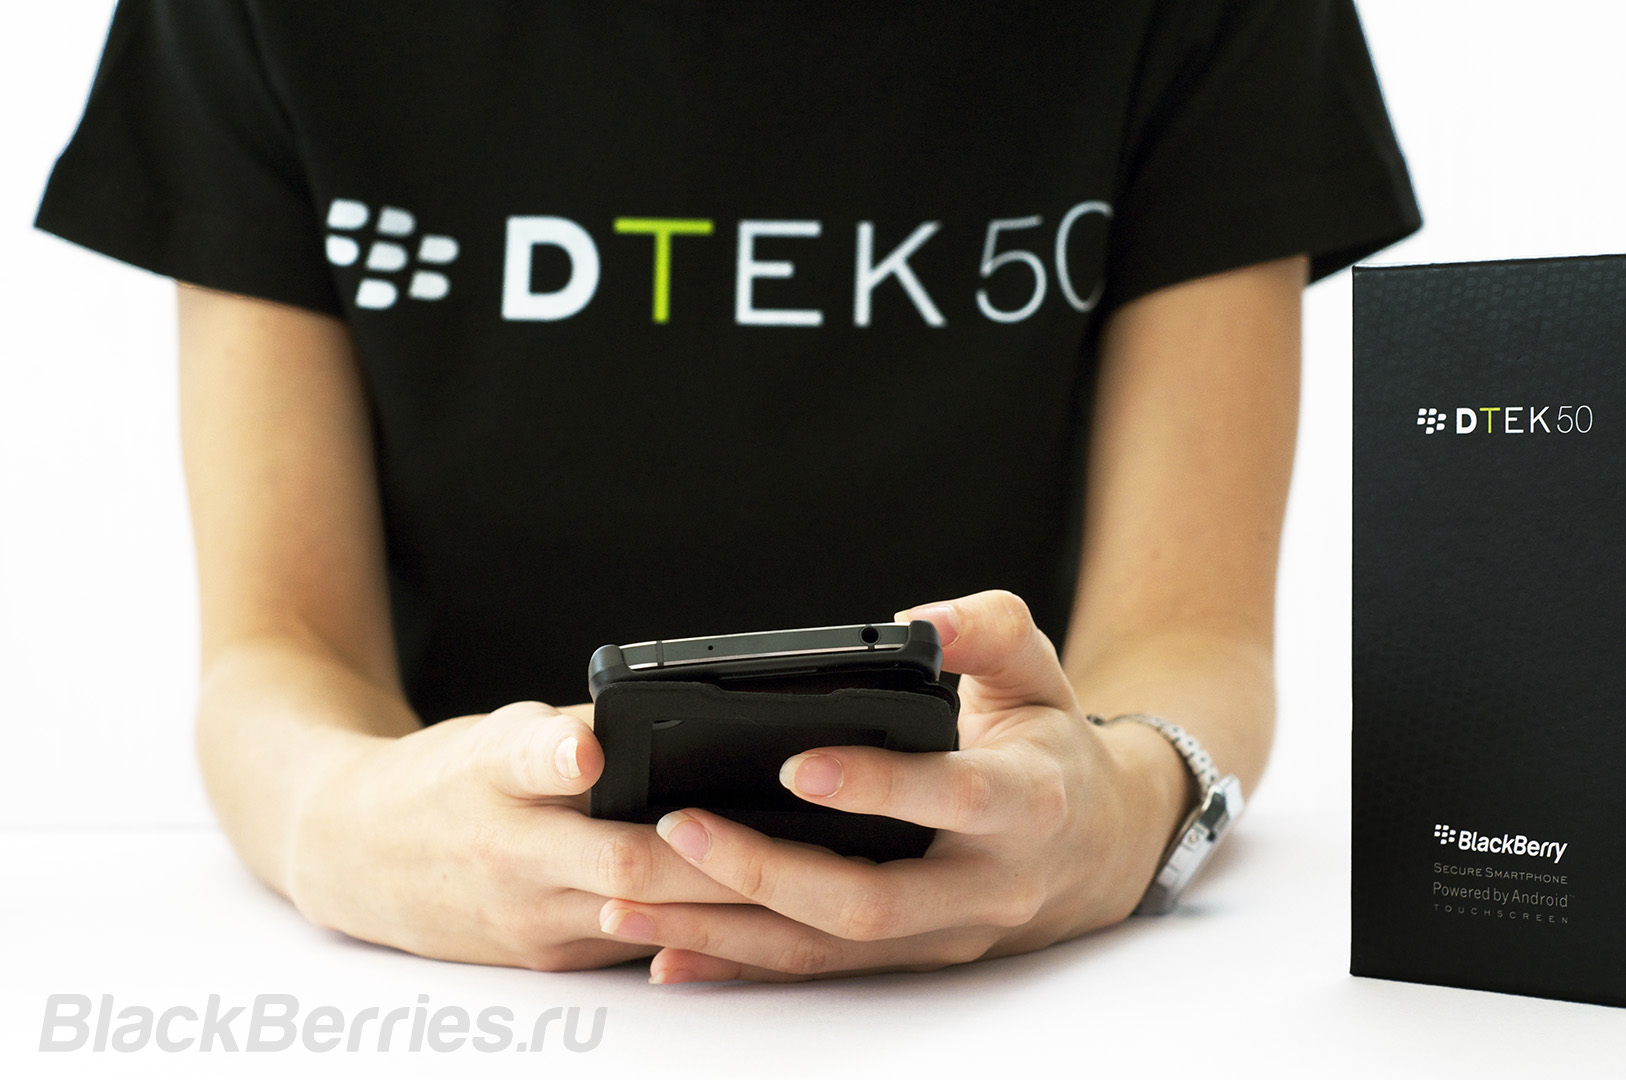 blackberry-dtek50-cases-42